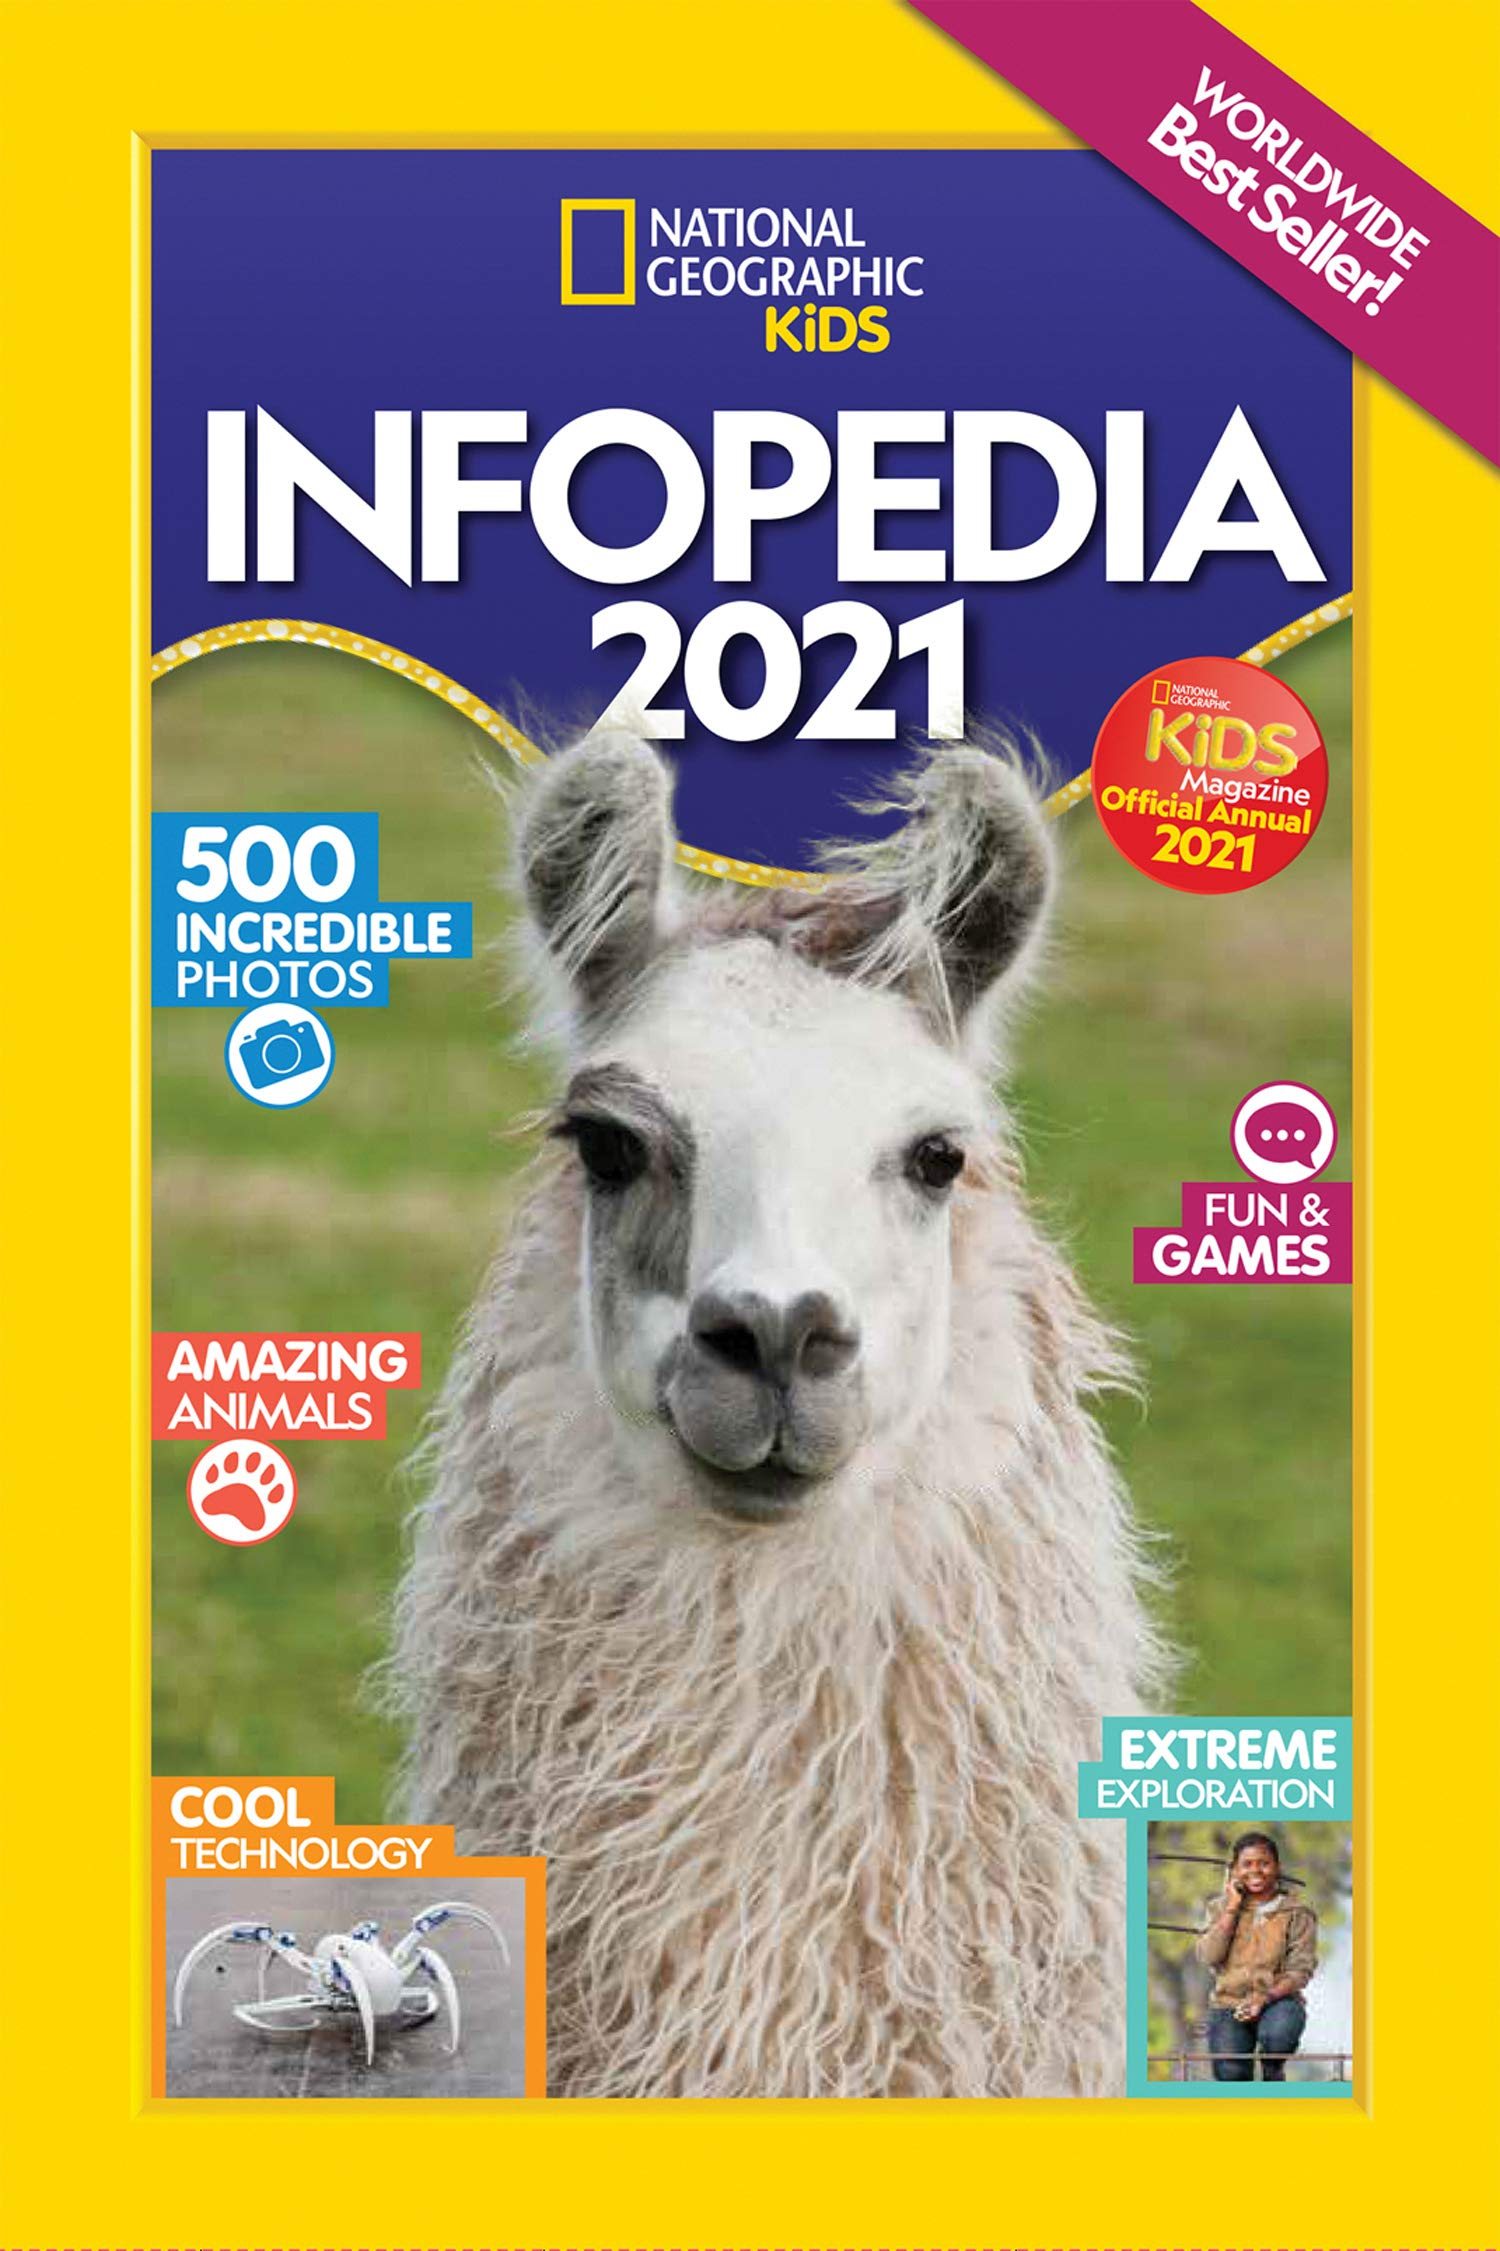 The 2021National Geographic Kids' Infopedia